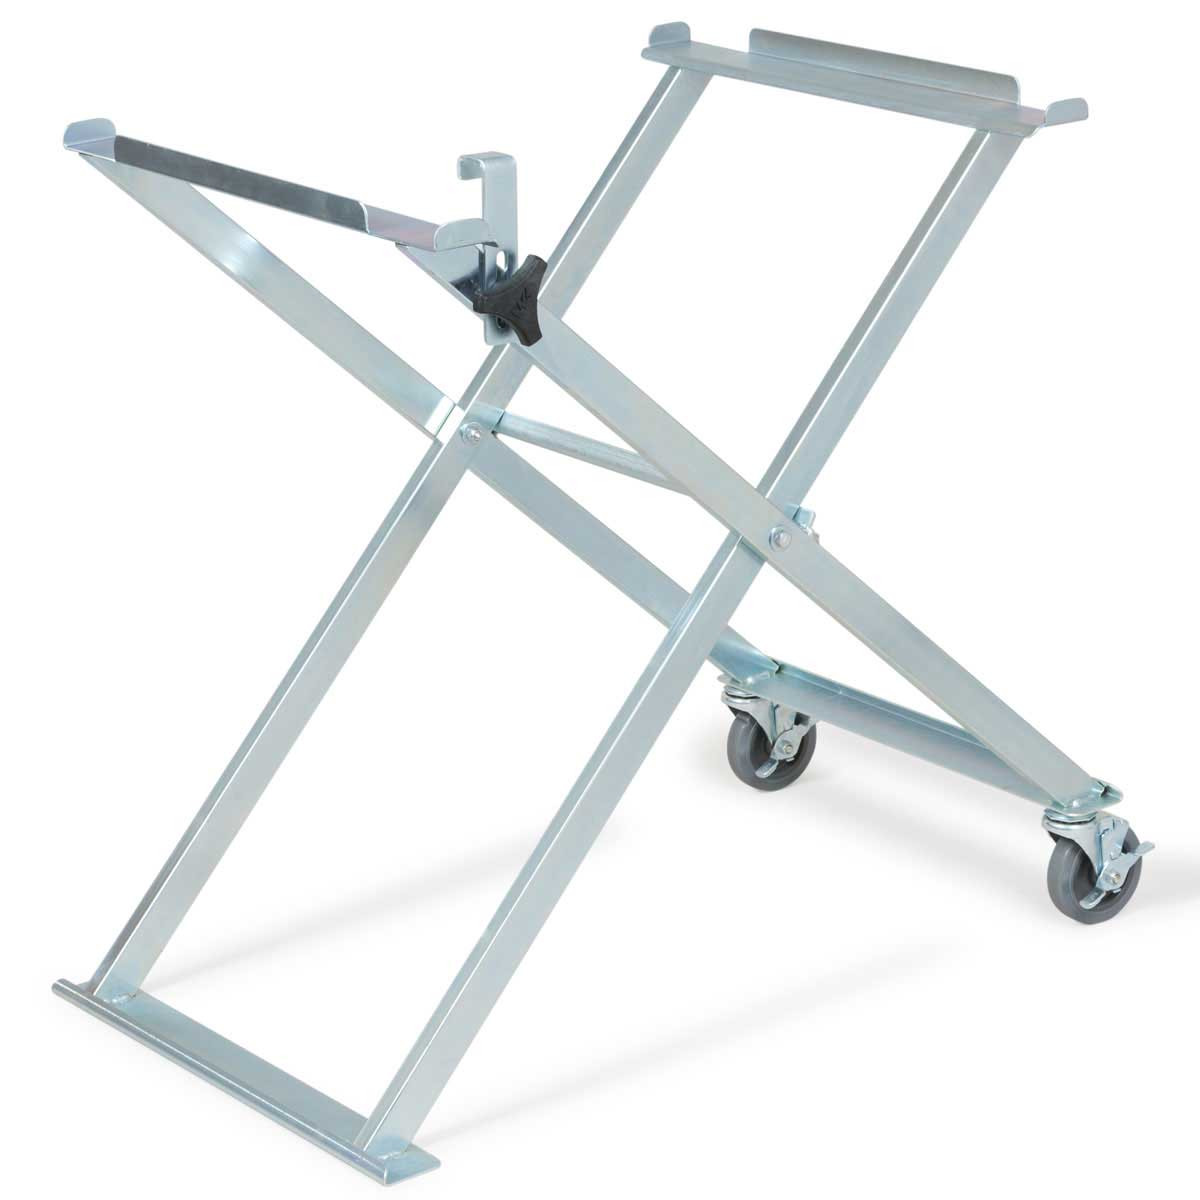 MK Tile Saw Folding Stand With Wheels